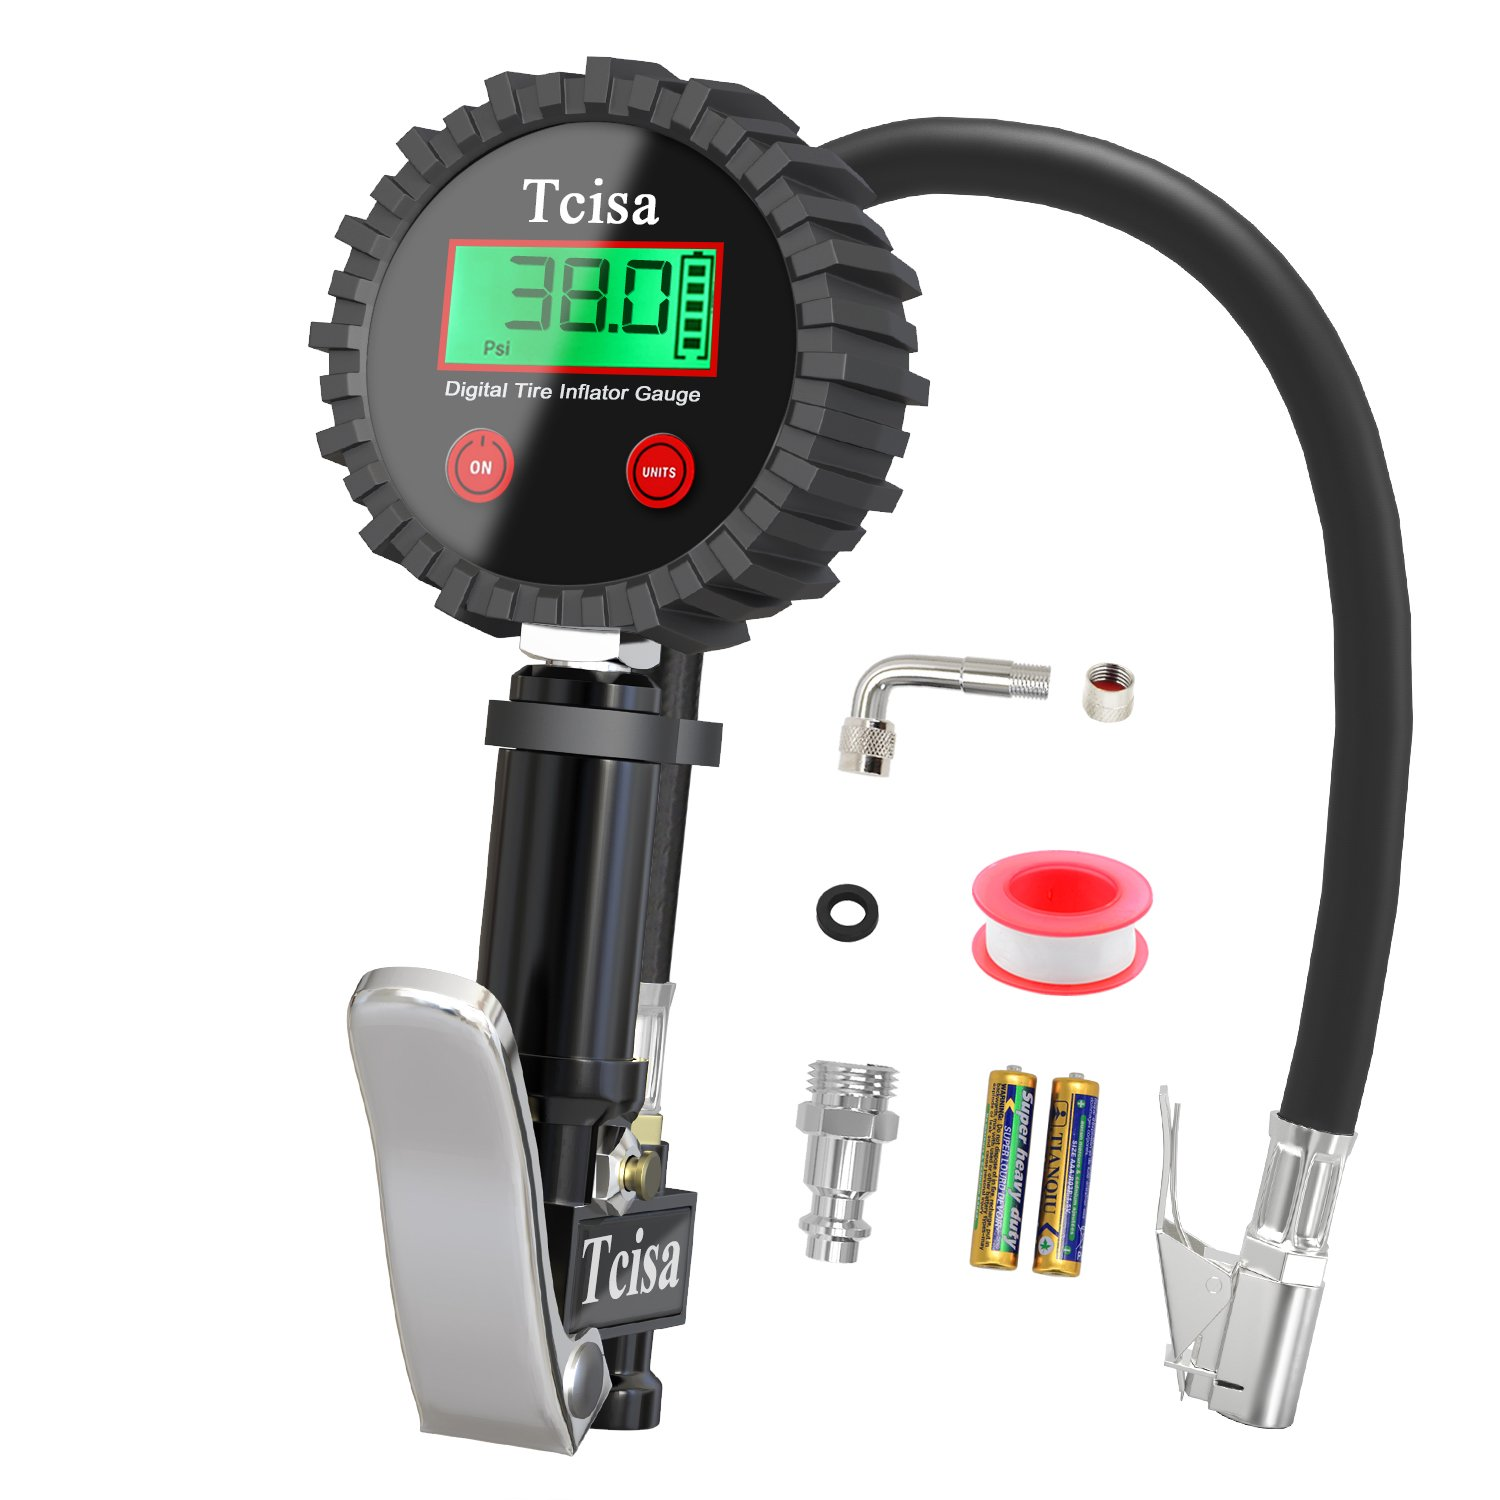 Digital Heavy Duty 200 PSI Air Pressure Gauge with Brass Air Chuck Valve Extender Rubber Air Hose Quick-Connect Fitting Tcisa Tire Inflator with Pressure Gauge